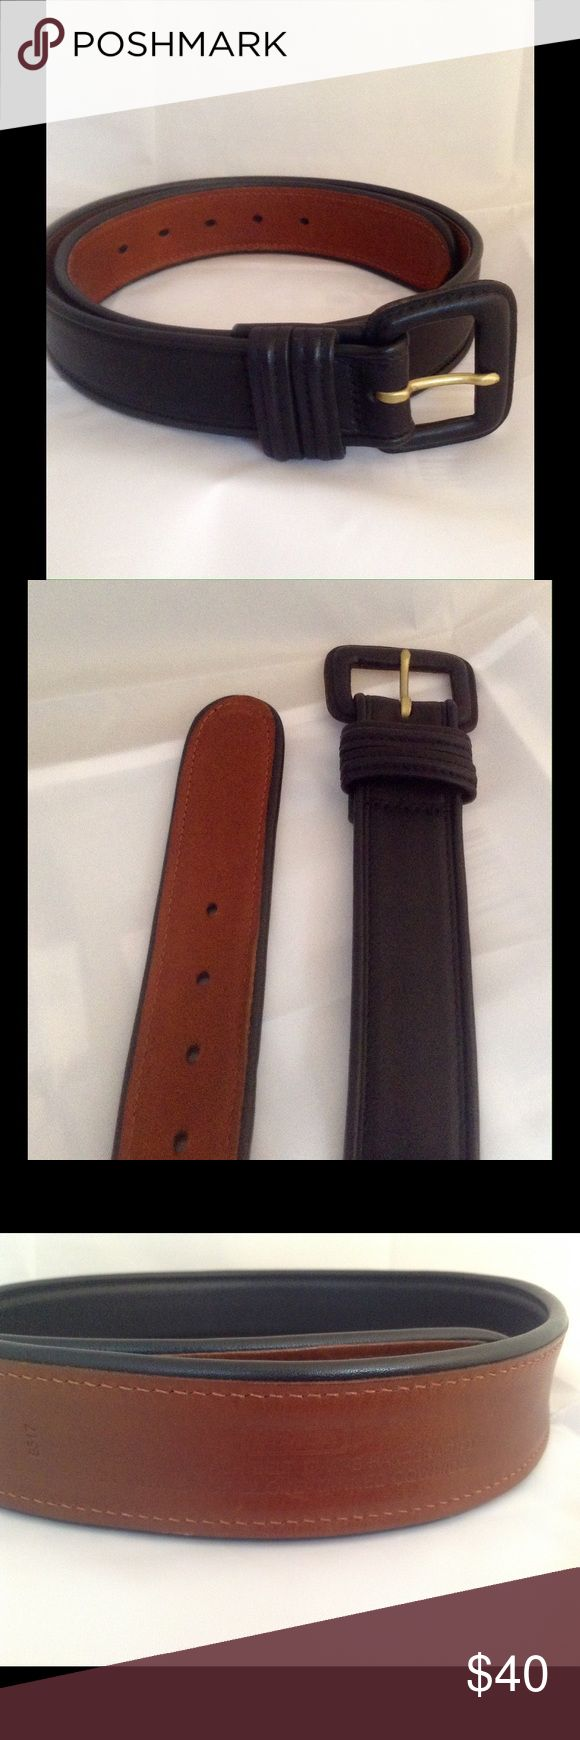 COACH BLACK LEATHER BELT Authentic black leather coach belt, # 8517, hand crafted in turkey of glove-tanned cowhide. Coach Accessories Belts